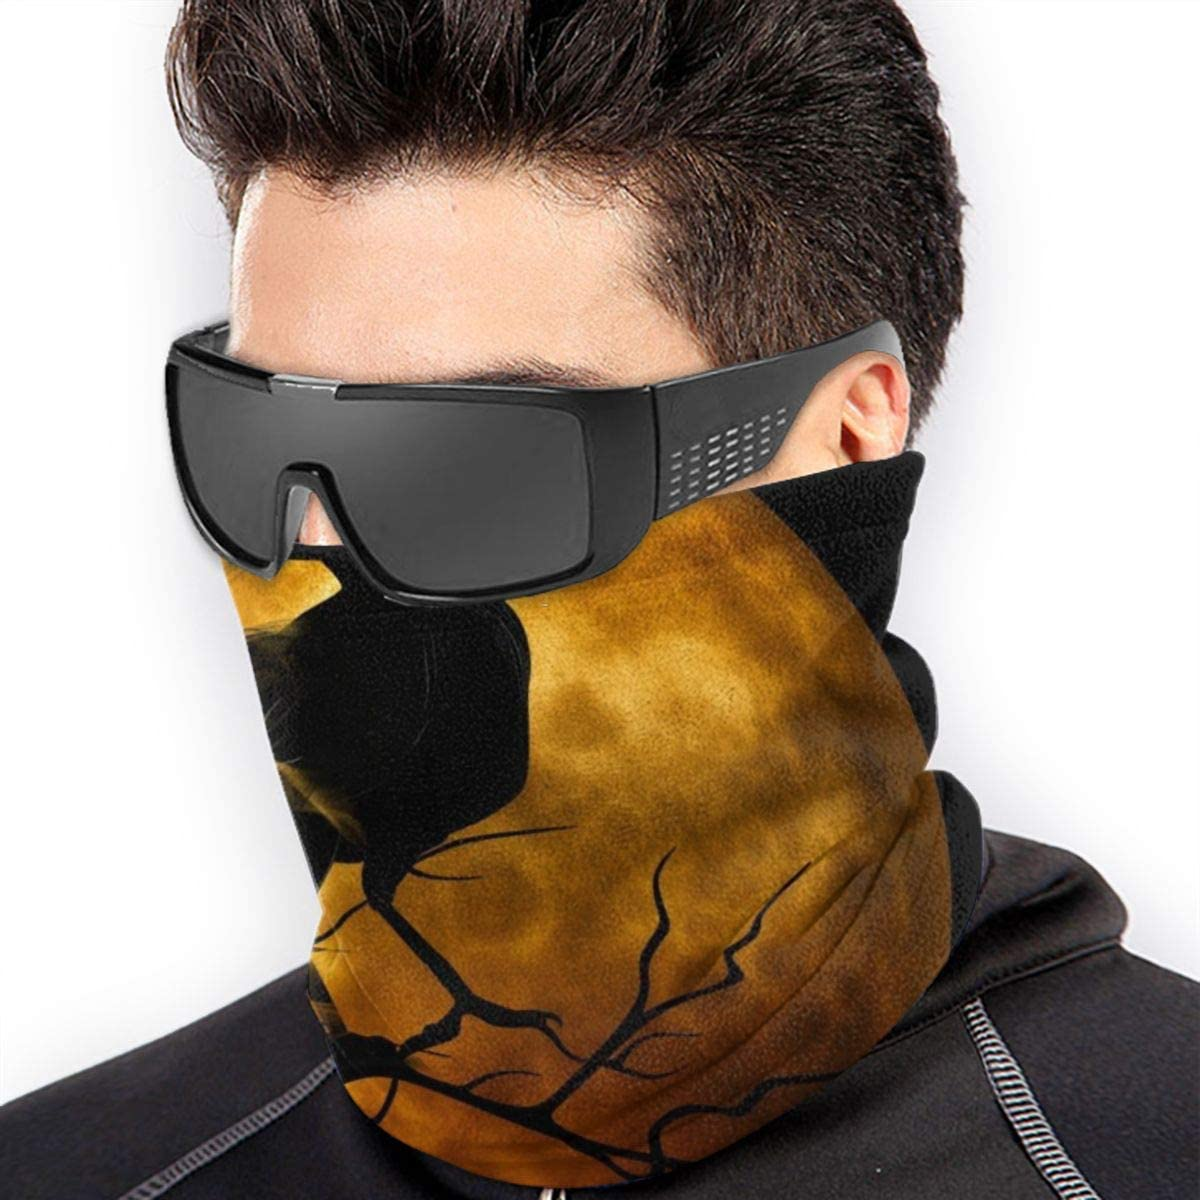 Winter Neck Gaiter Warmer Windproof Face Mask for Cold Weather Skiing Running